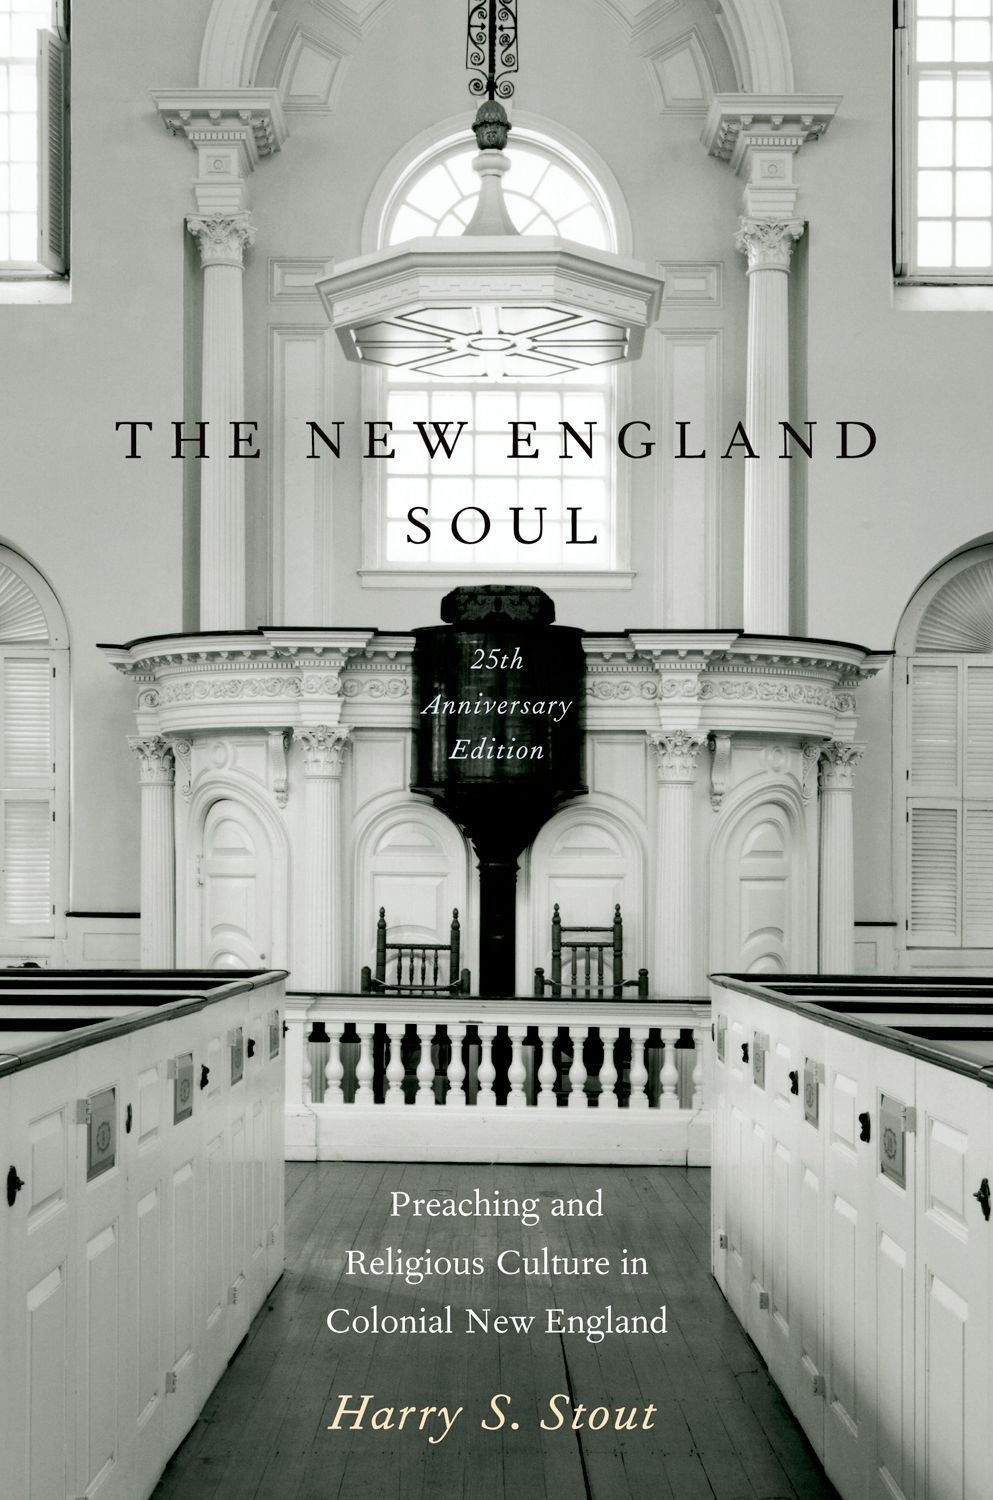 The New England Soul: Preaching and Religious Culture in Colonial New England